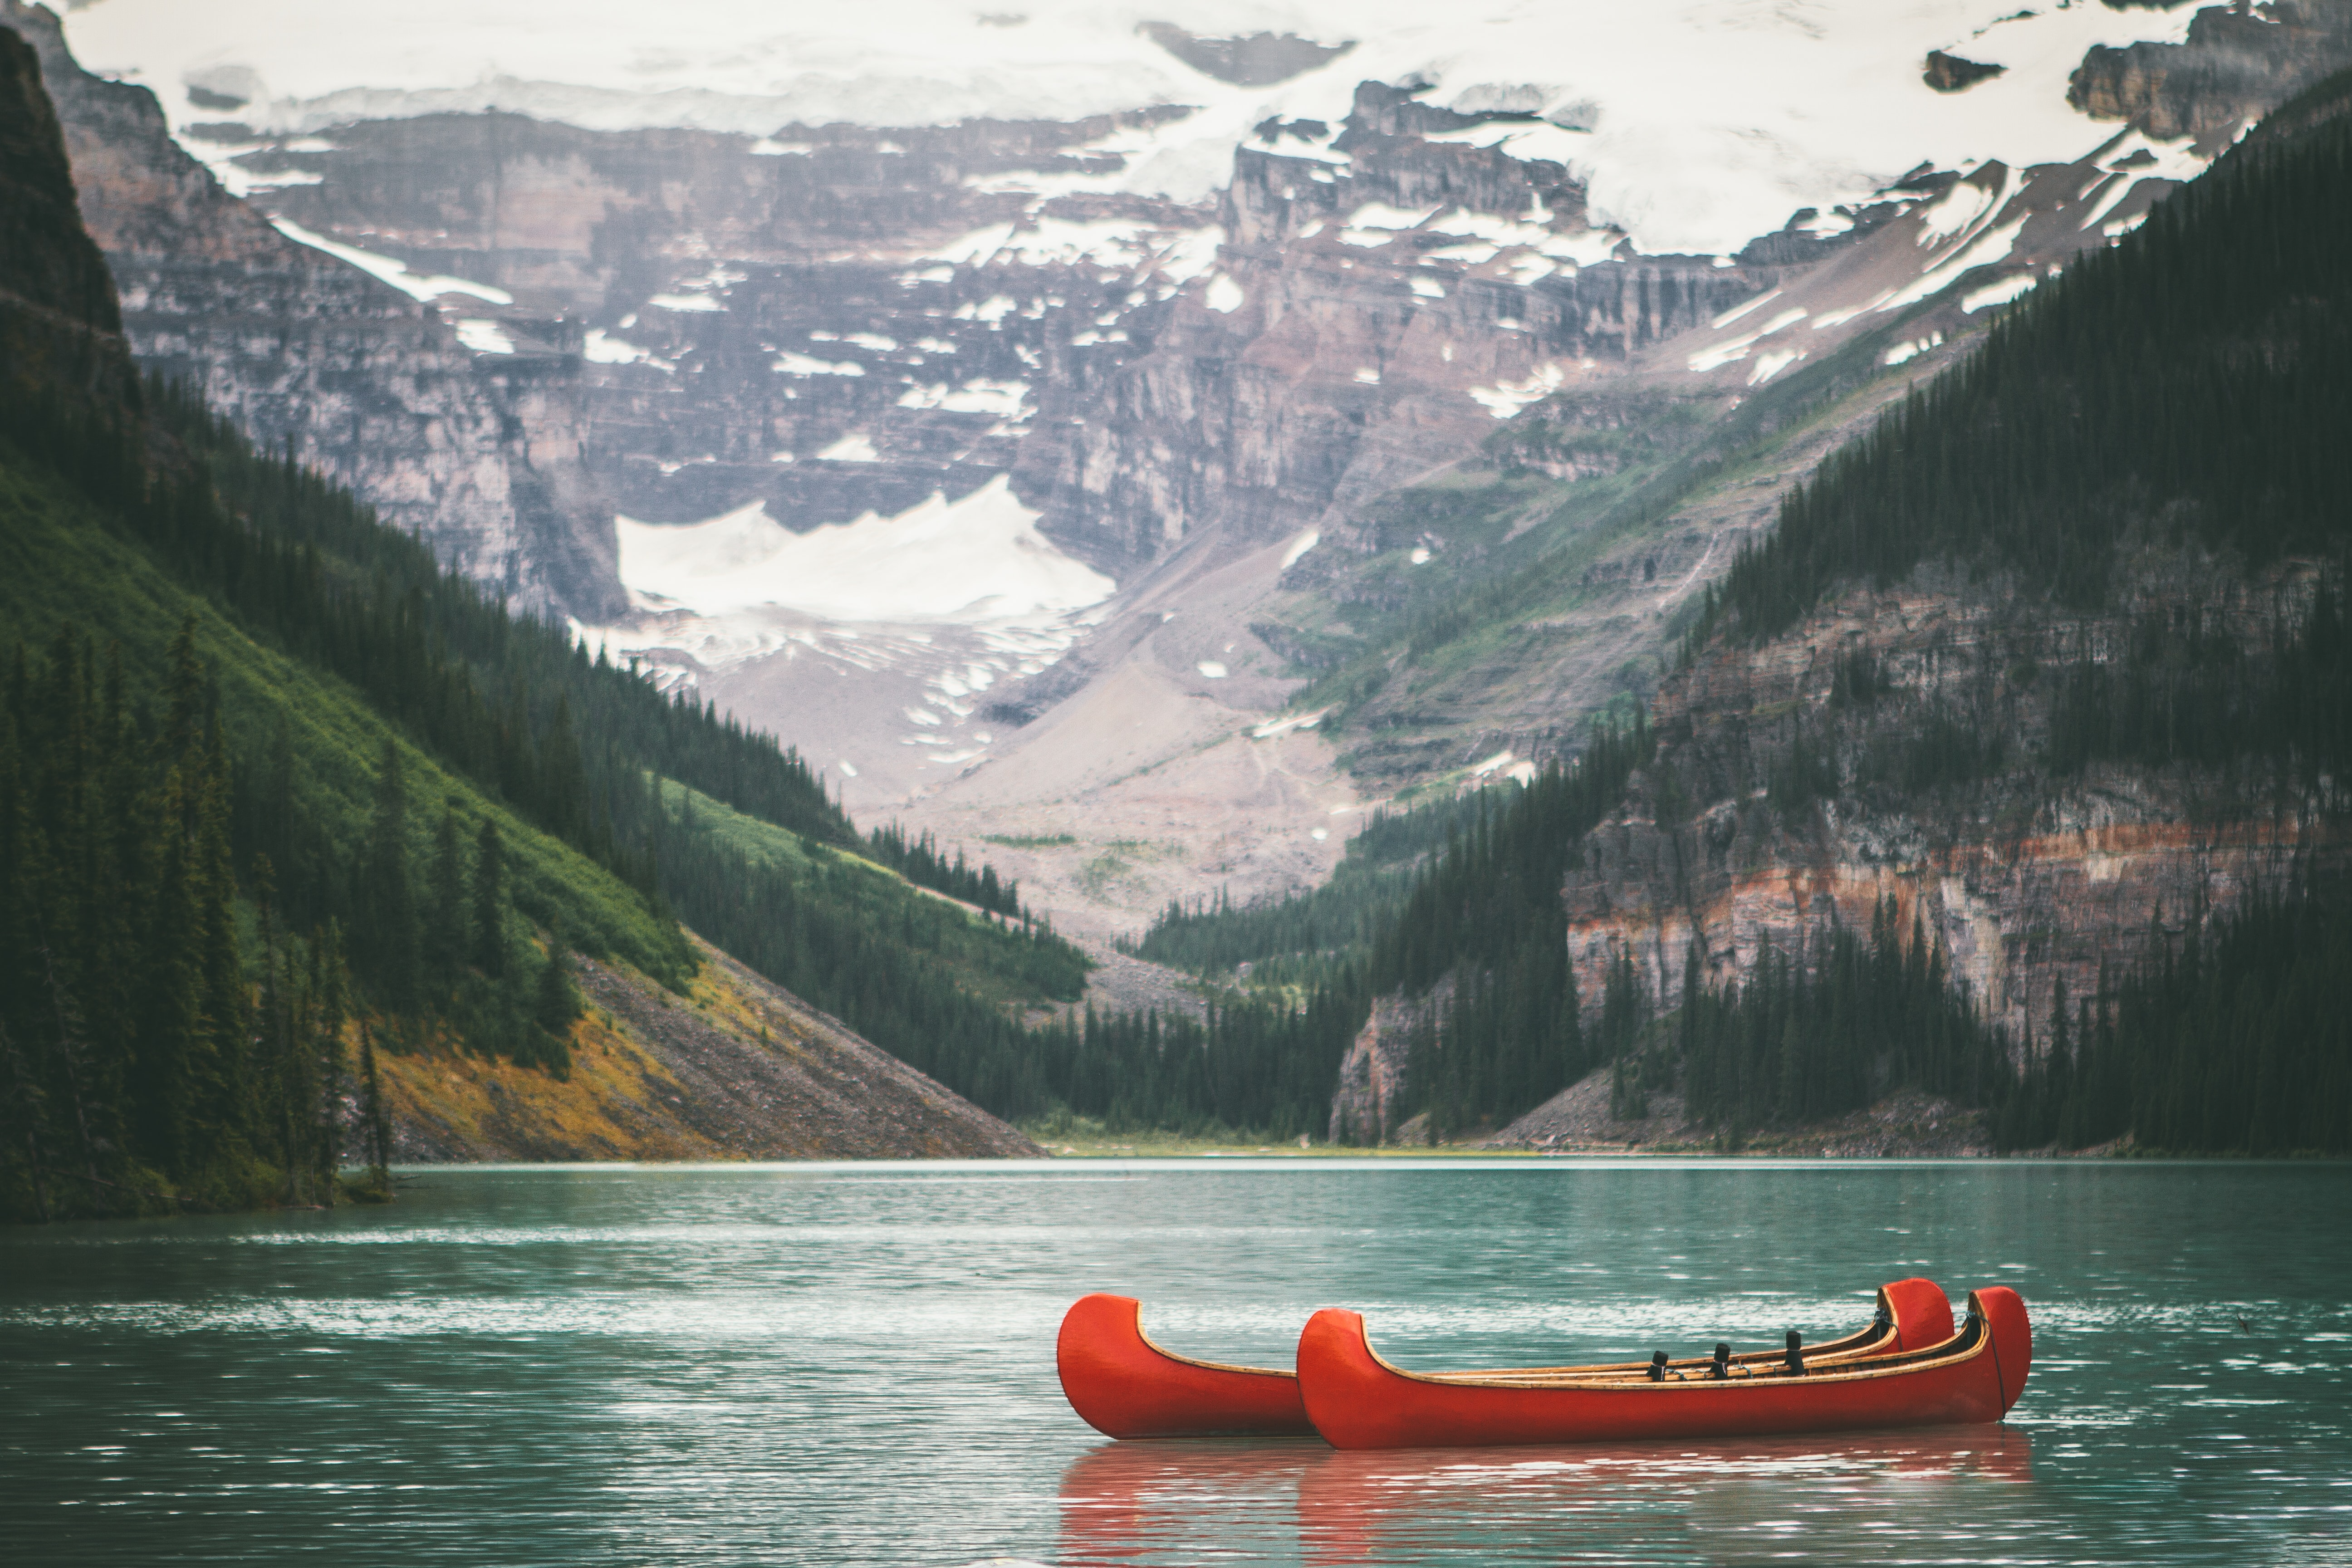 two orange boats on body of water in front of mountain with trees during daytime